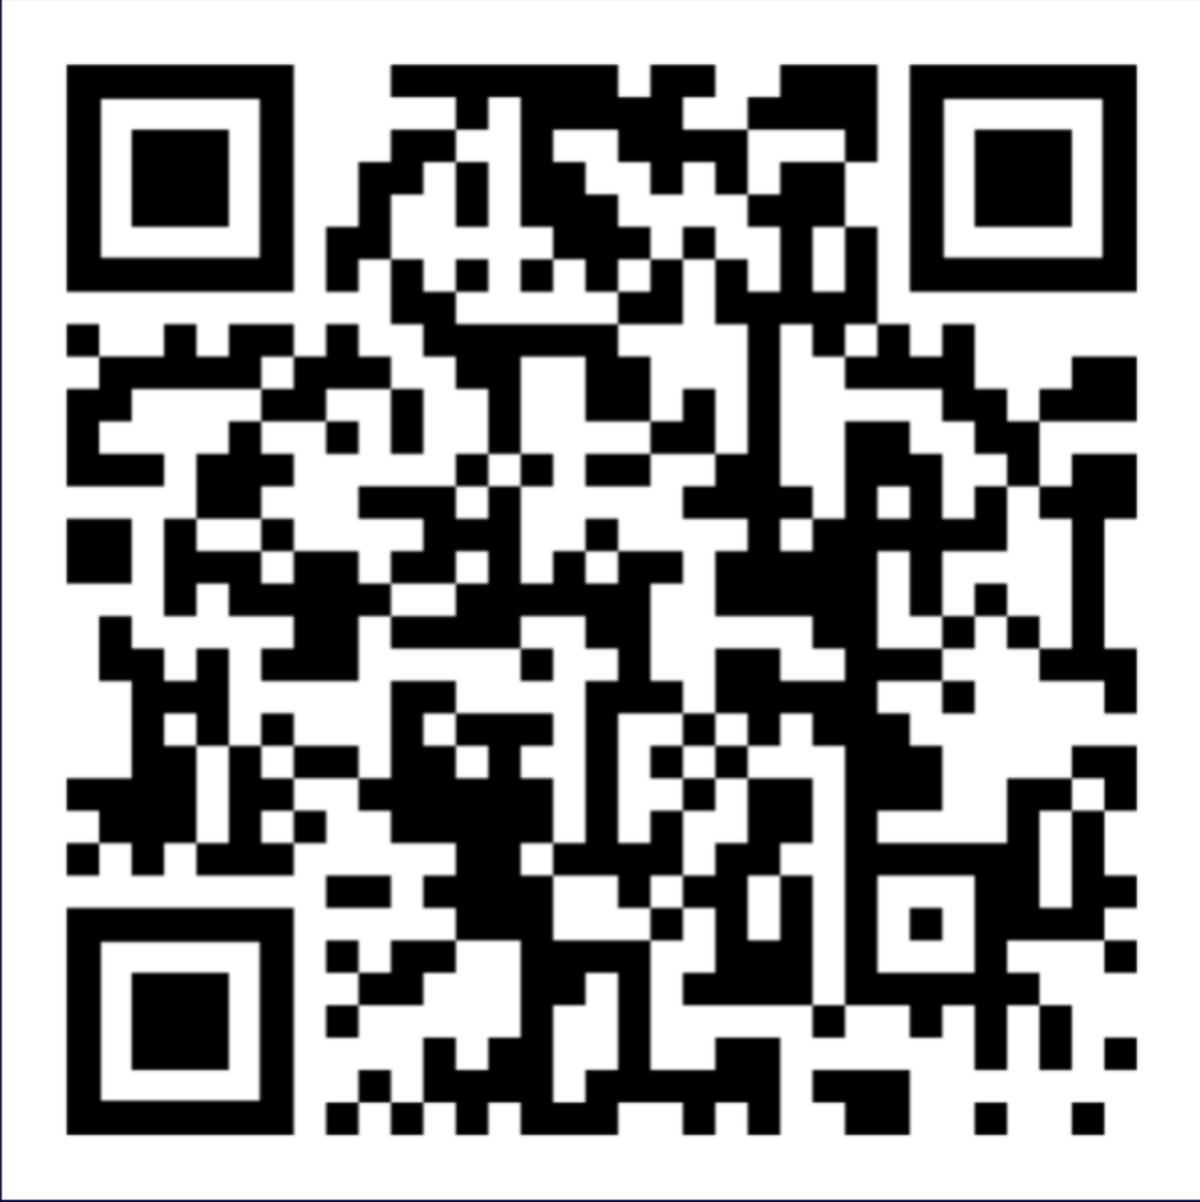 QR code for sign-up